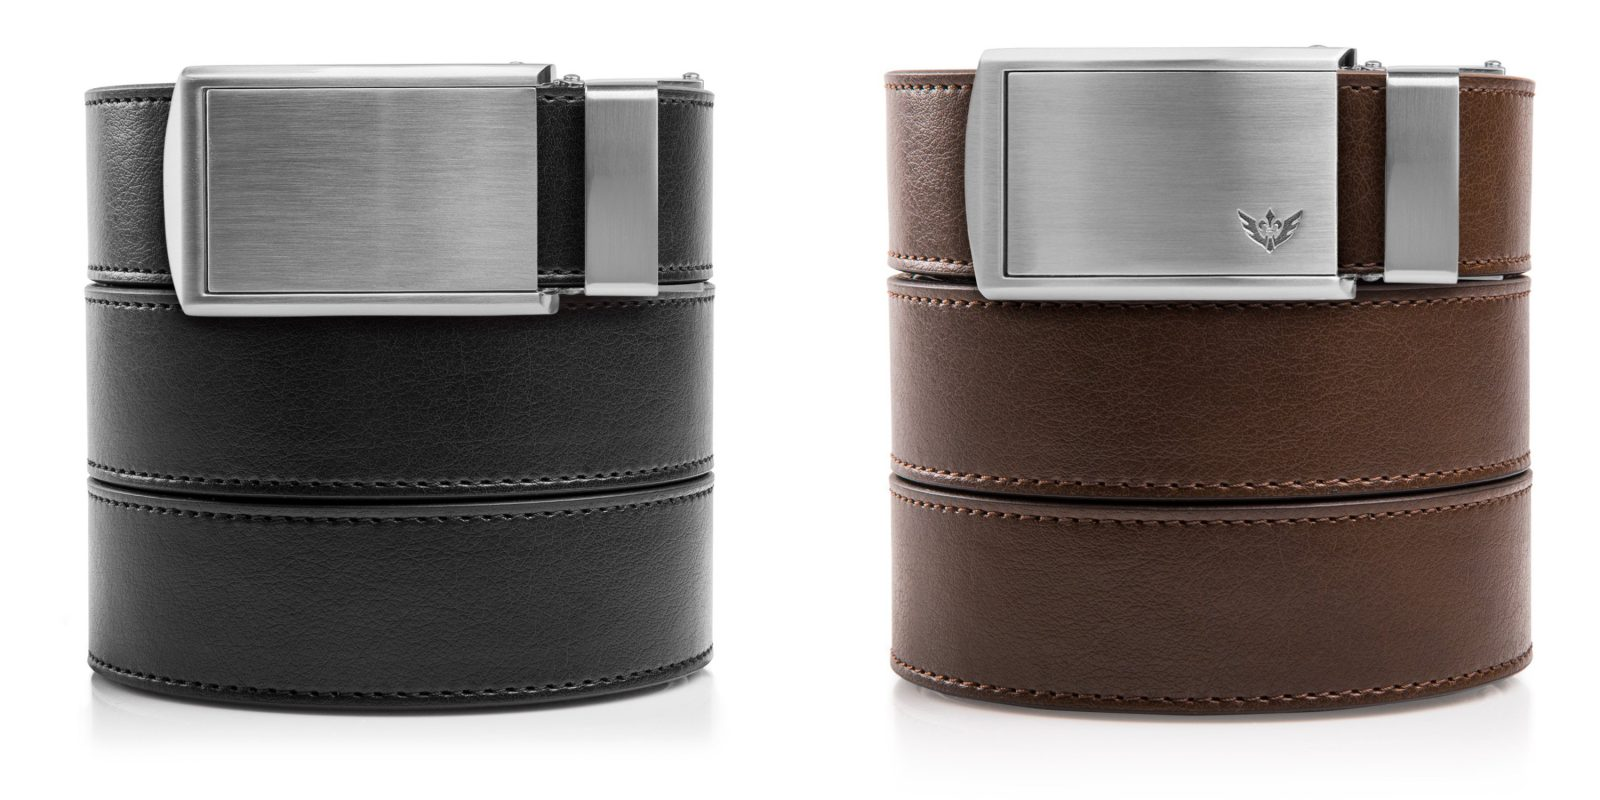 Add A Stylish New Premium Leather Belt To Your Wardrobe